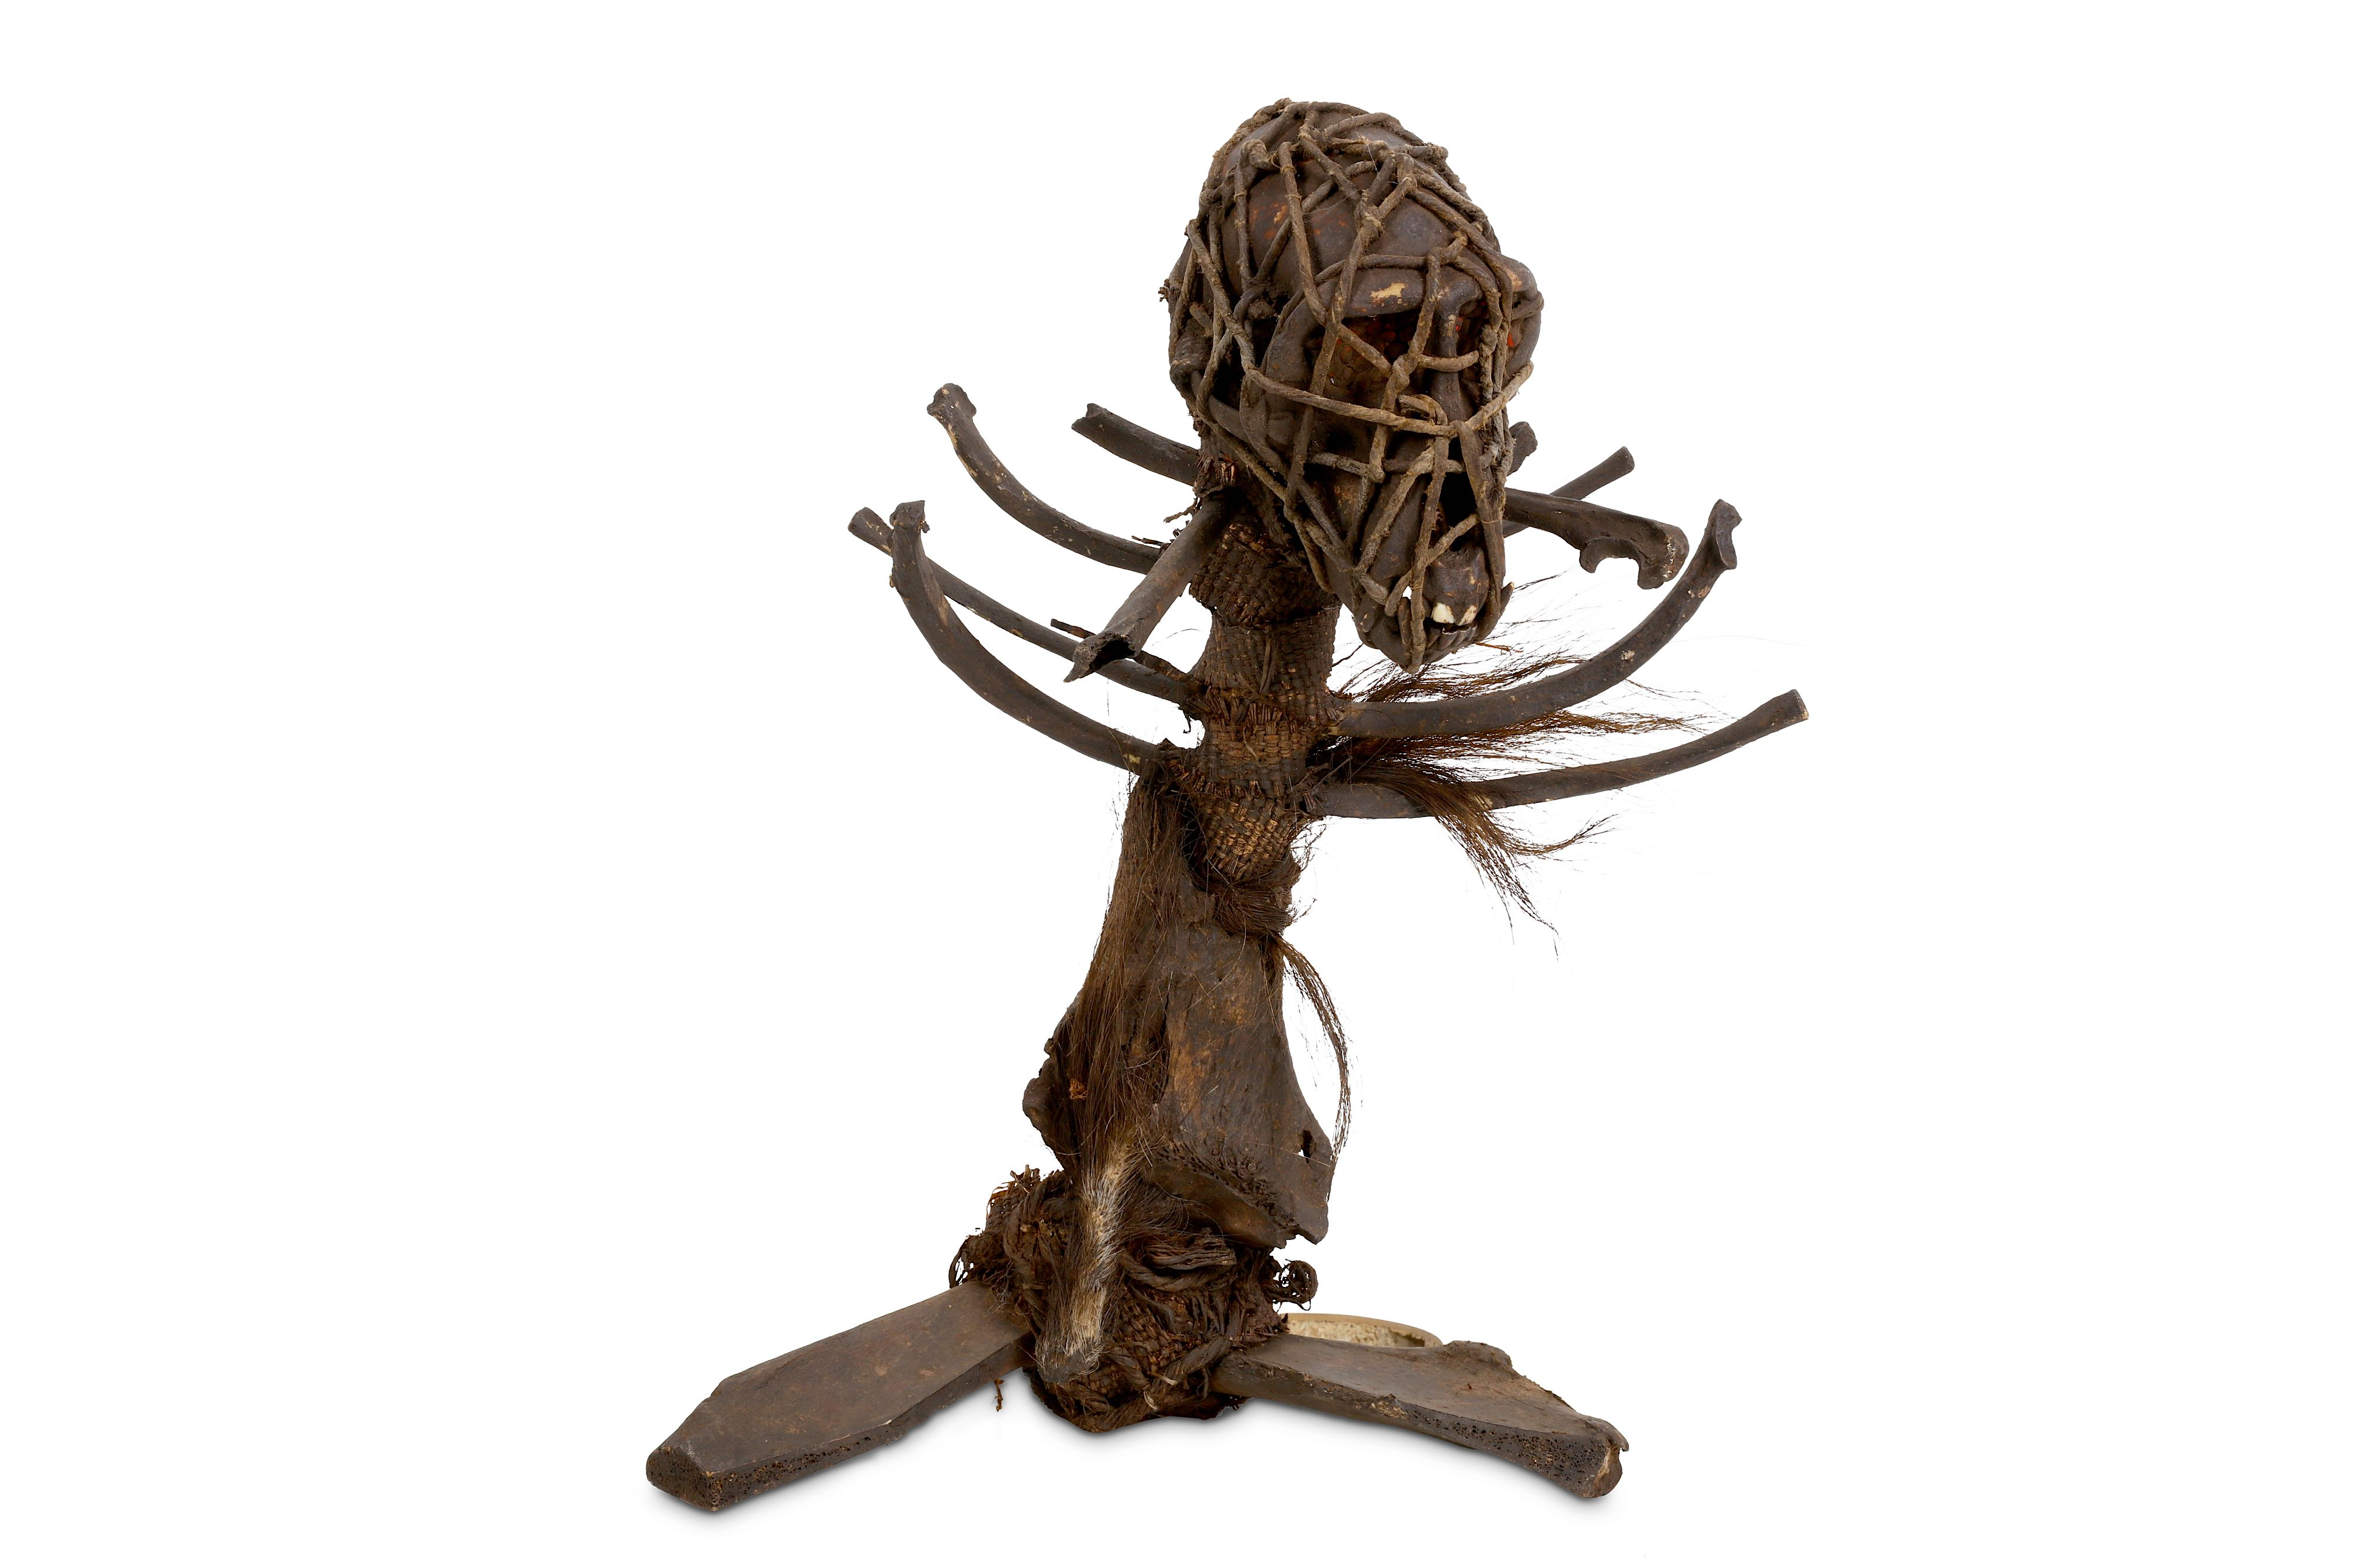 Lot 13 - A 19TH CENTURY AFRICAN WITCH DOCTOR STAFF (FETISH) FORMED FROM MONKEY REMAINS